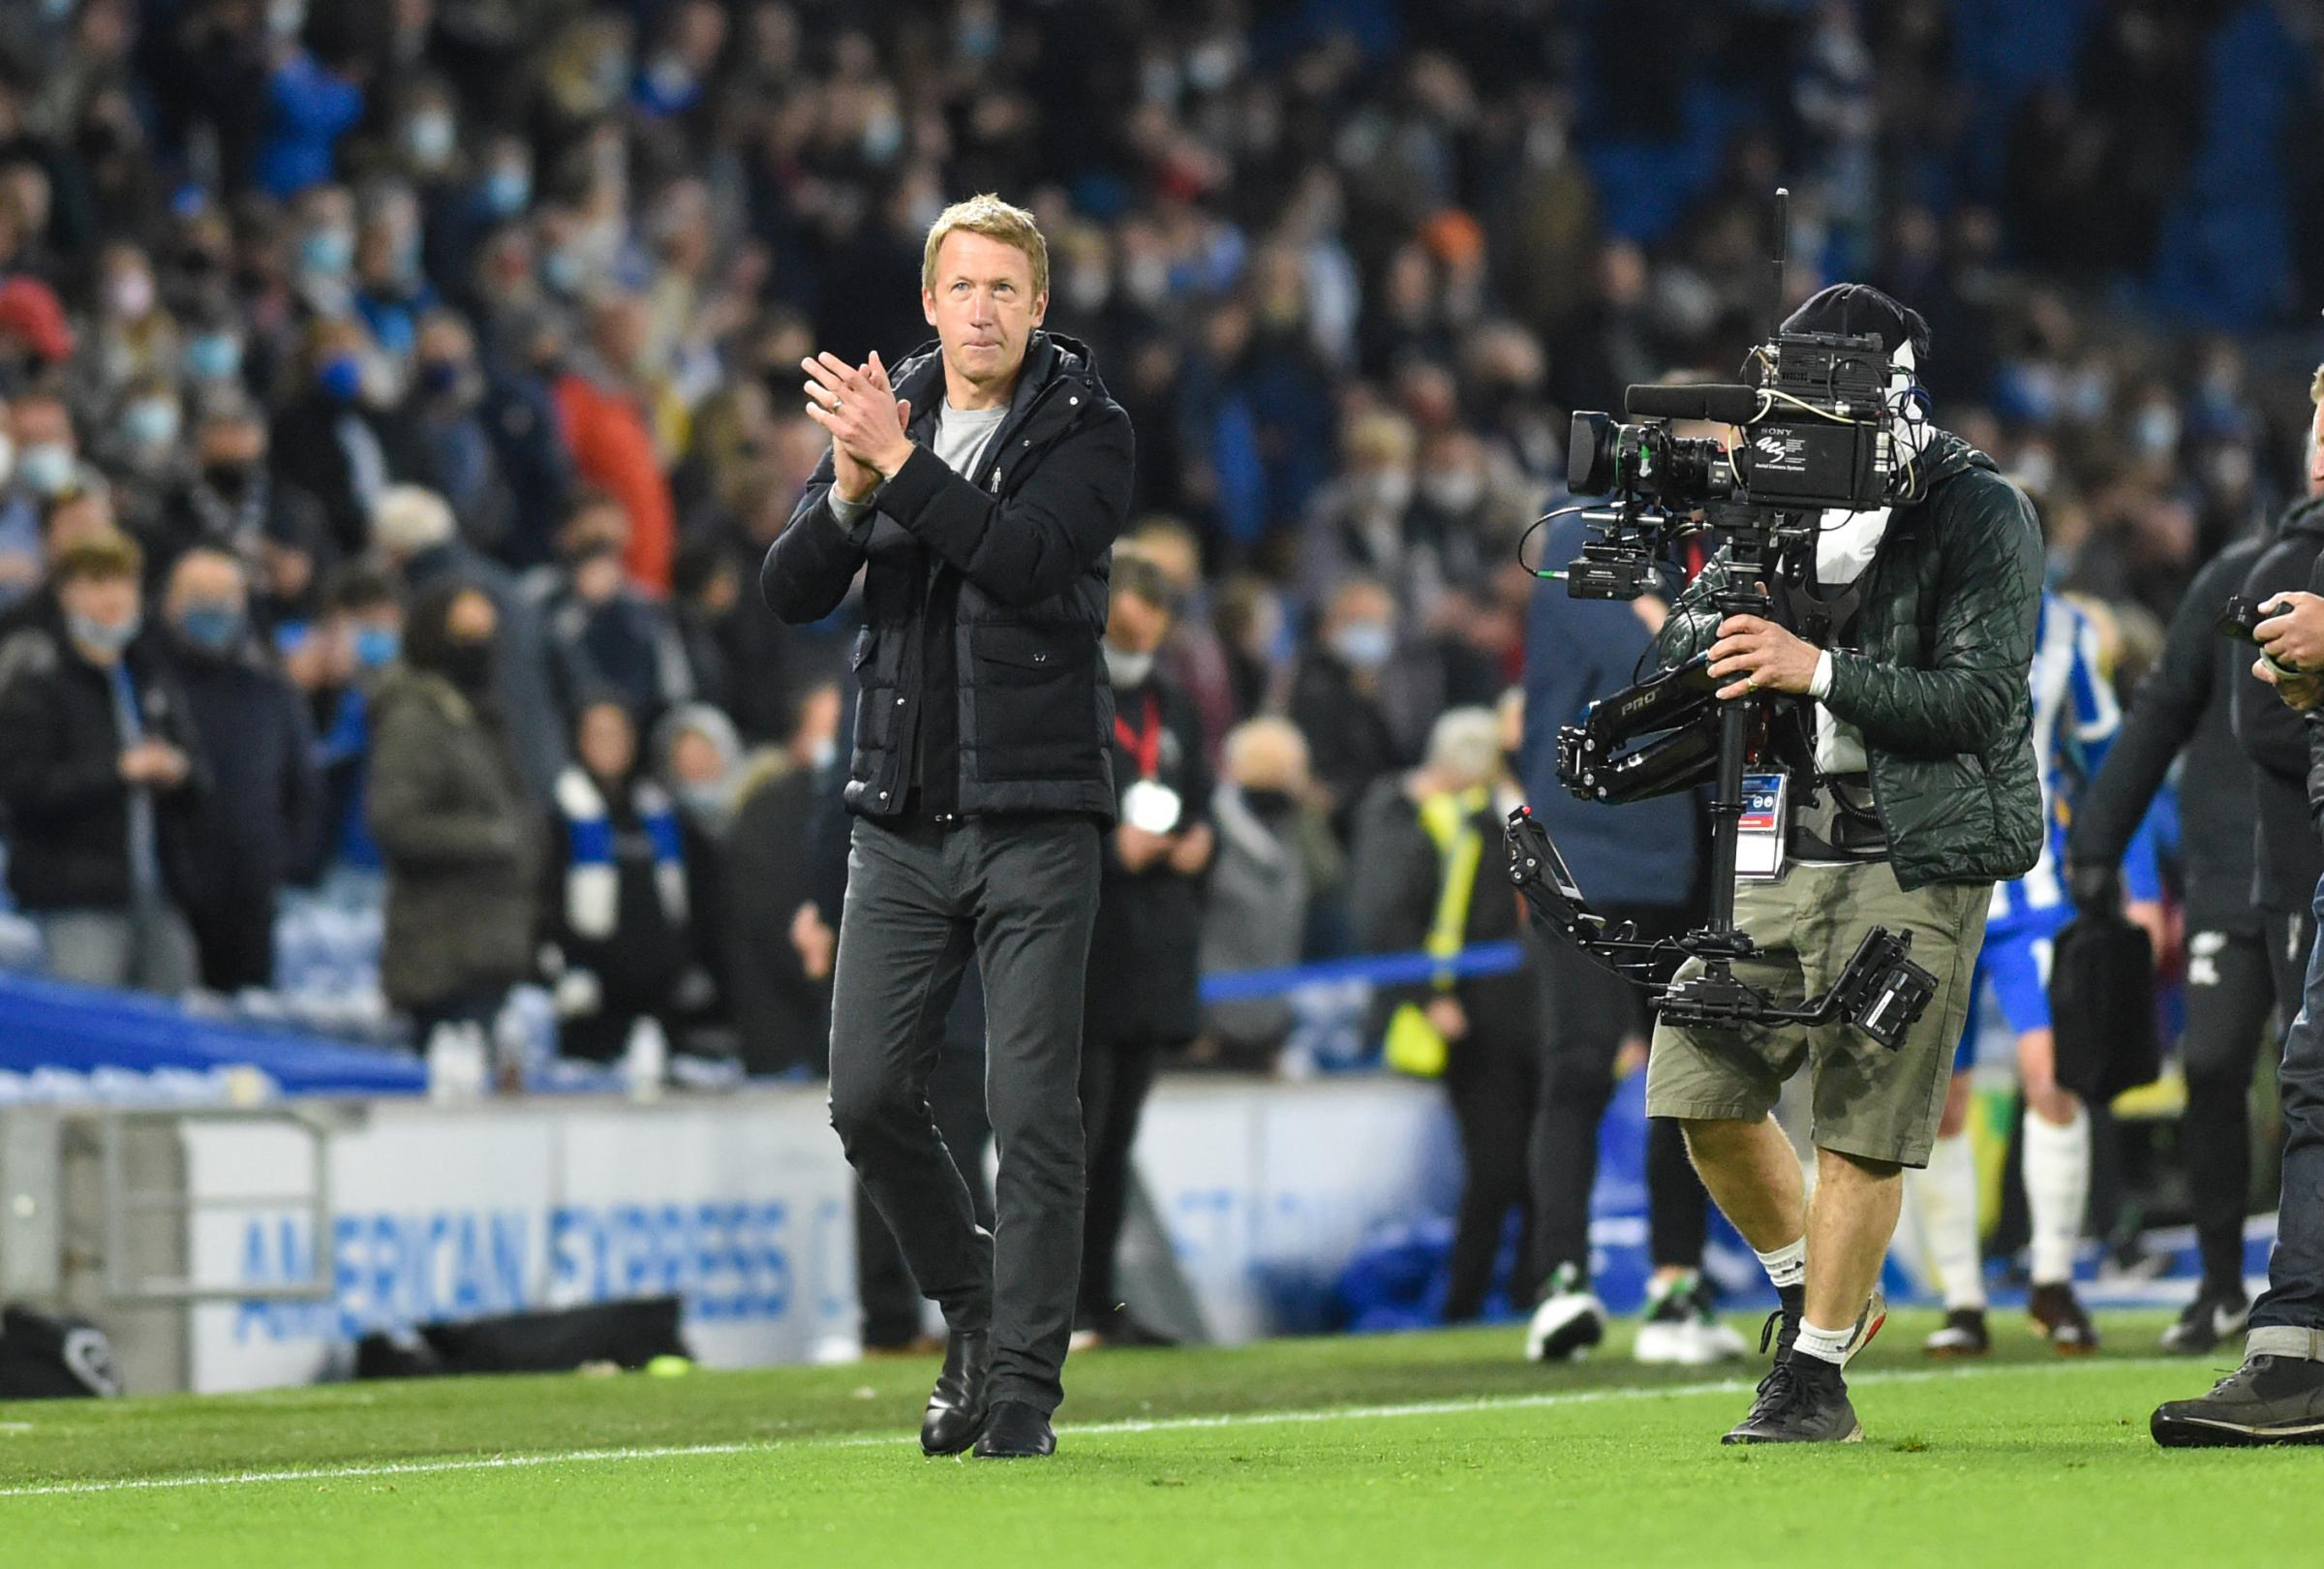 Brighton boss Graham Potter glad to see fans at the Amex